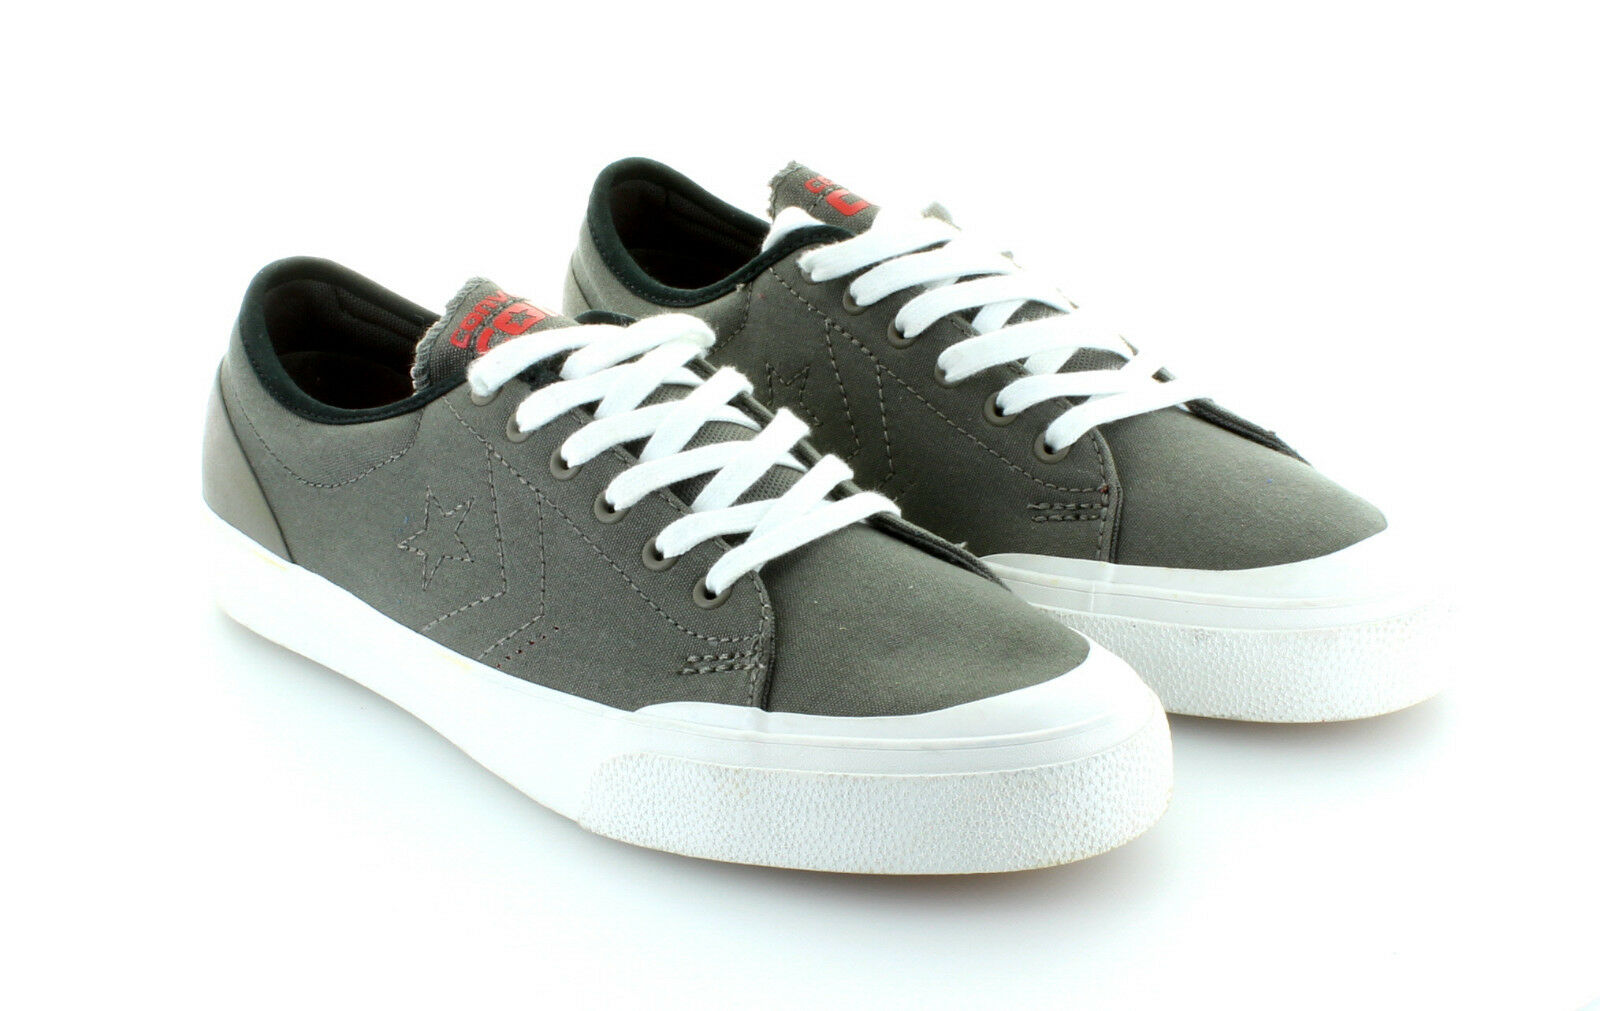 Converse Cons Summer Ox Canvas Charcoal Charcoal Charcoal taille 42,5/43,5 US 9 | Up-to-date Styling